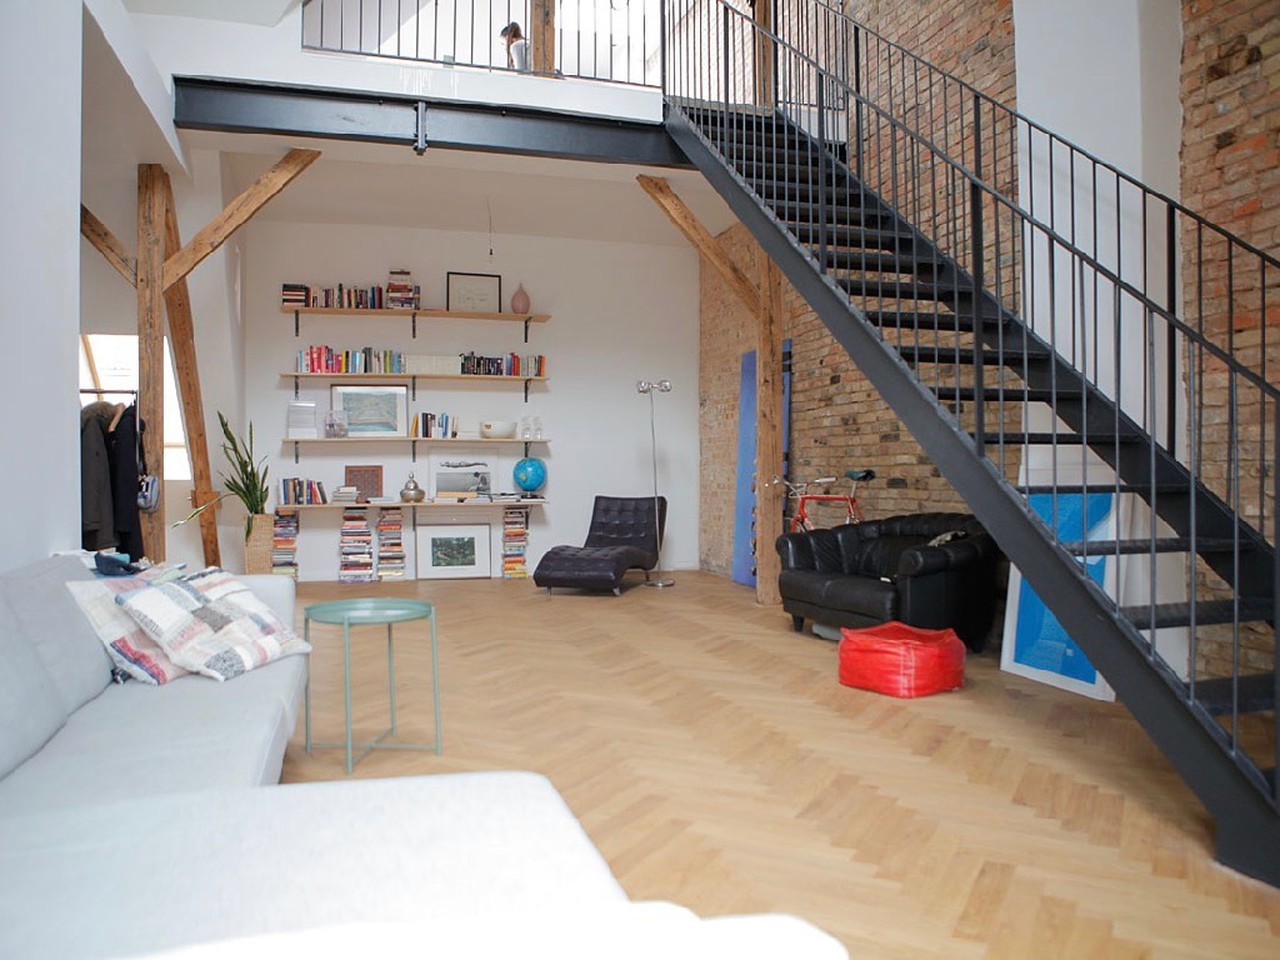 Berlin Eventlocation  Linien Loft image 0